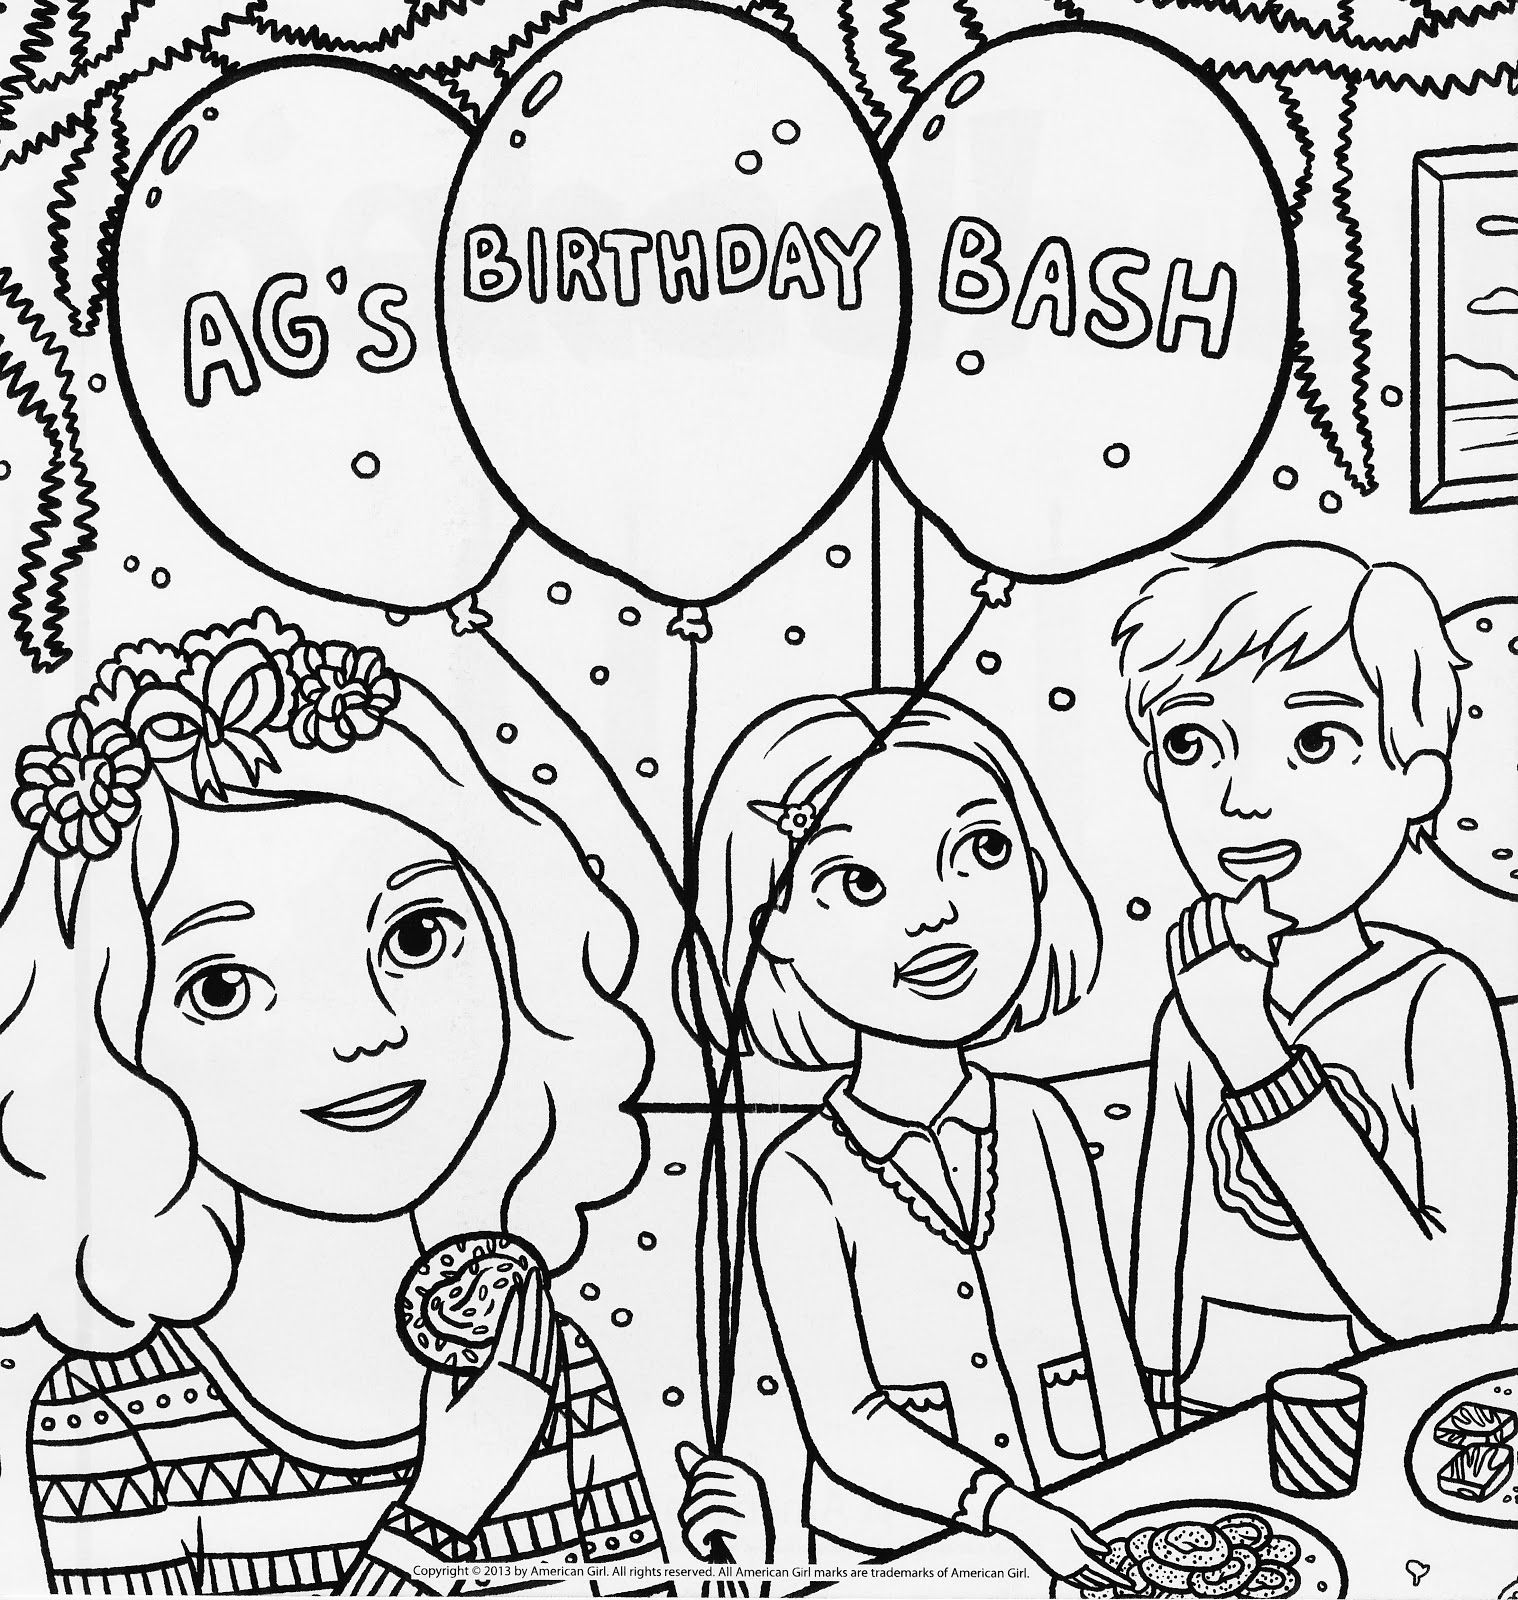 new american girl birthday bash coloring page